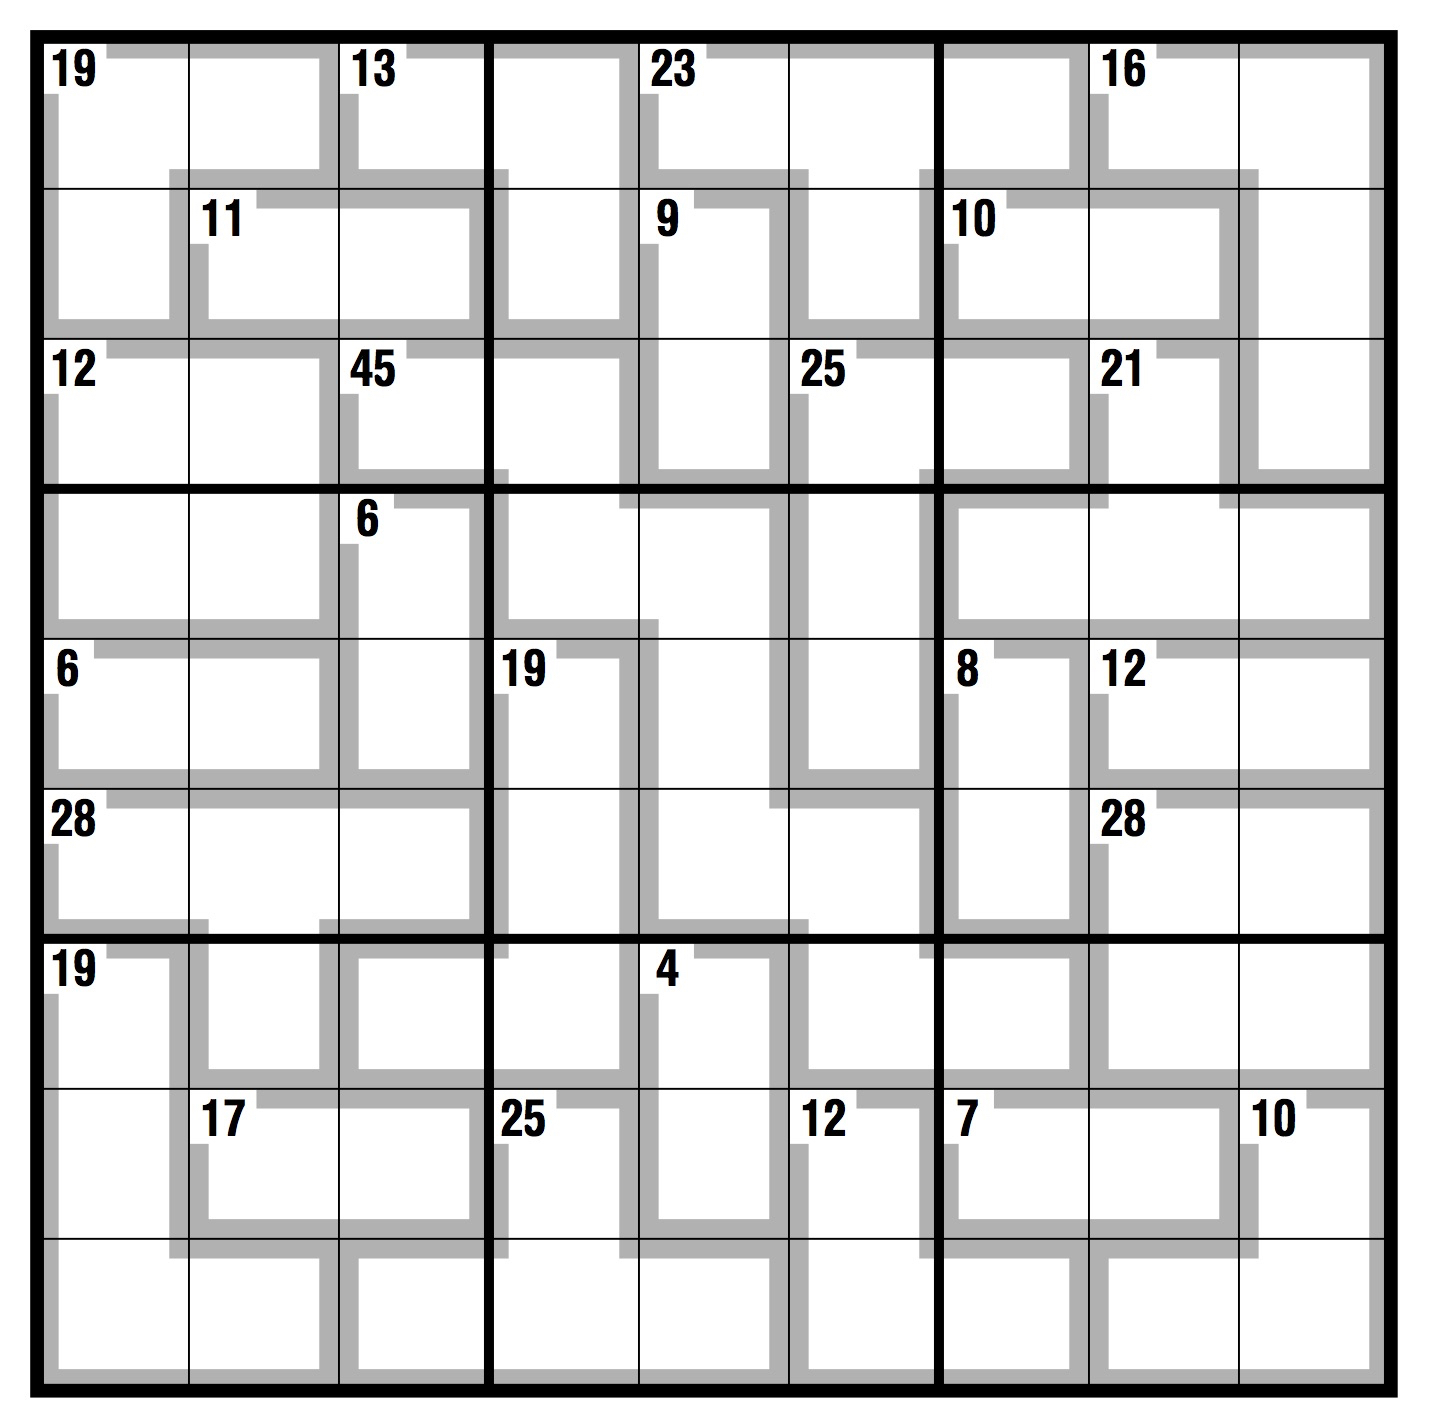 Uncategorized Blank Sudoku Worksheet observer killer sudoku life and style the guardian click here to access print version